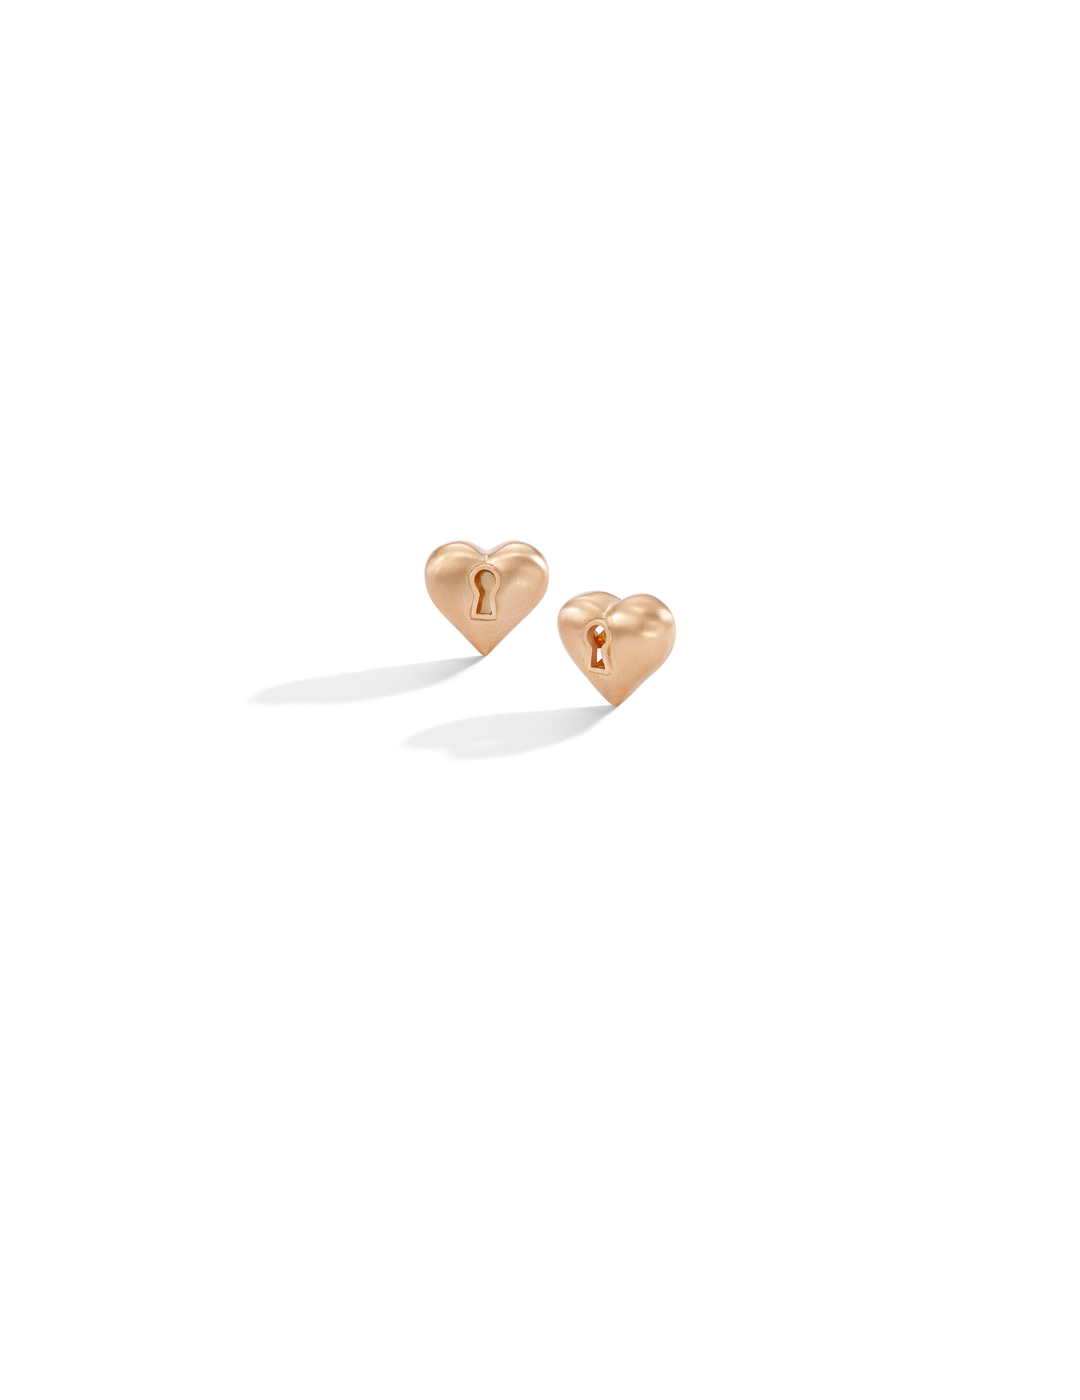 mish_products_earrings_Key-To-My-Heart-StudER-RG-1